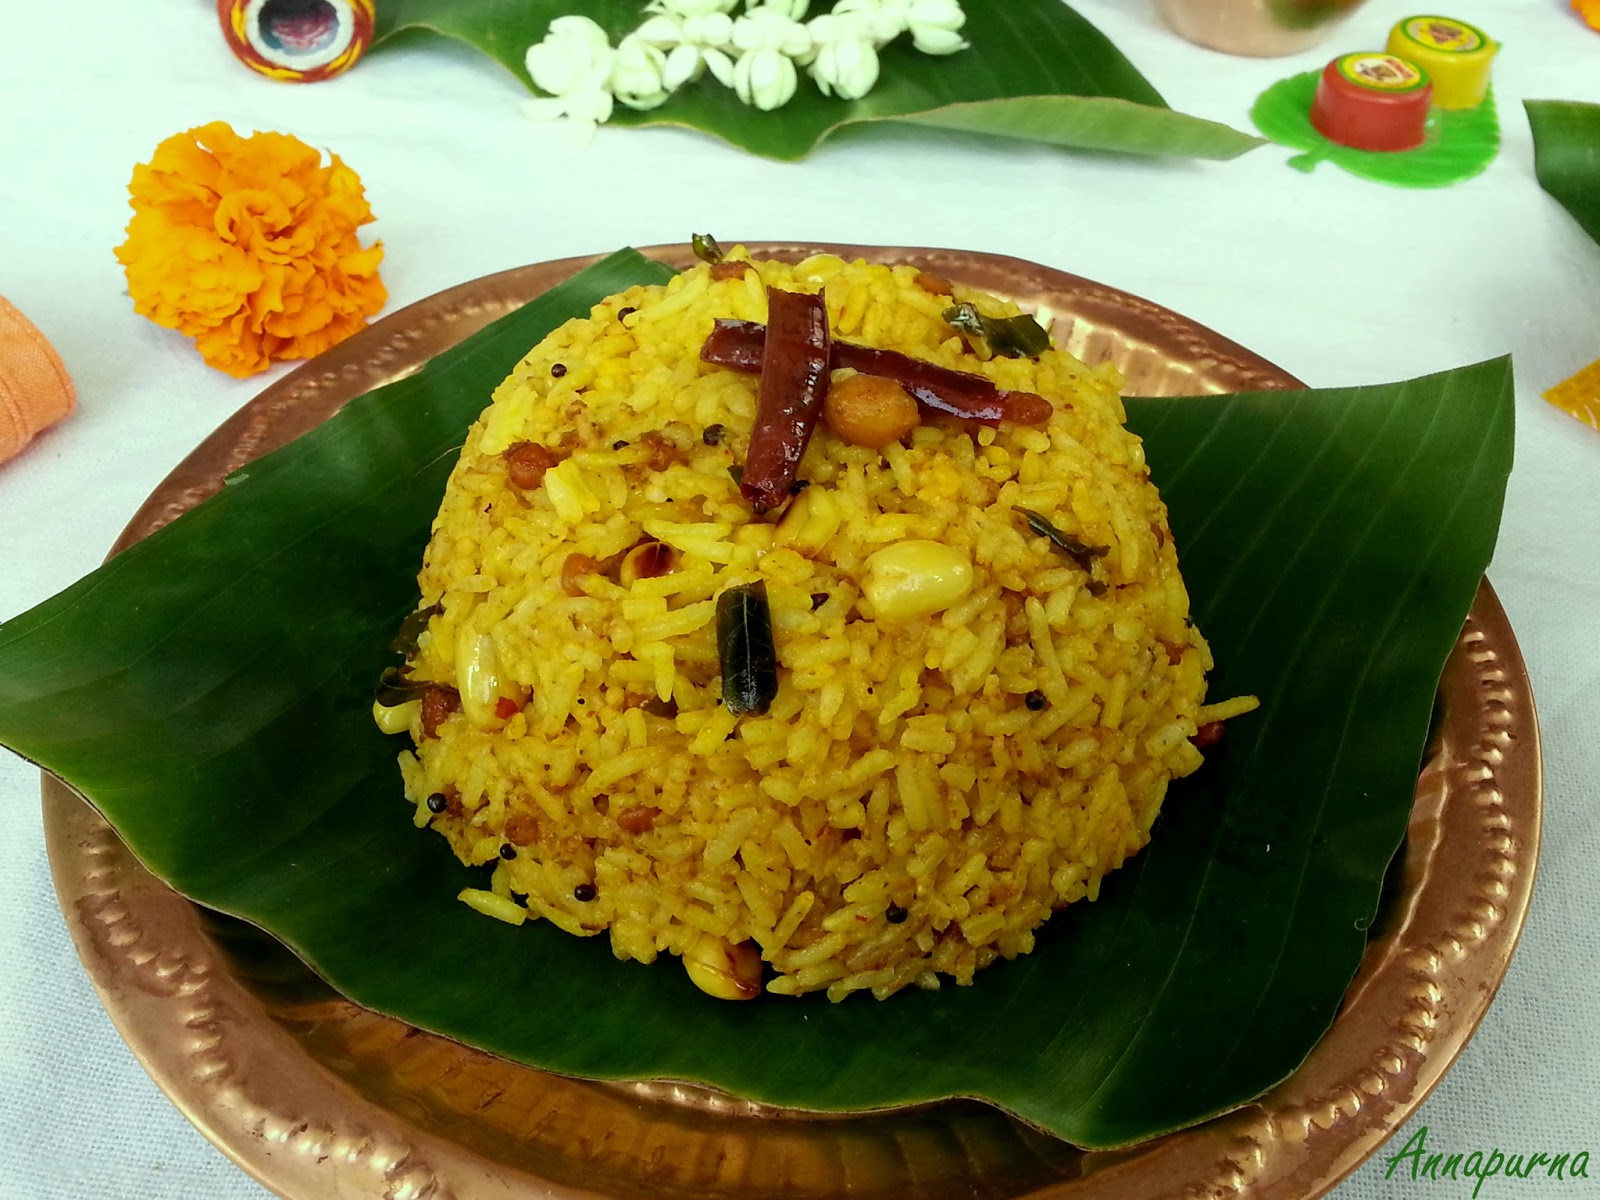 Annapurna puliyodharai pulihora south indian tamarind rice recipe pulihora is a popular travel food known for its long shelf life one can also find this rice served as naivedhyam prasad in most of the south indian forumfinder Images